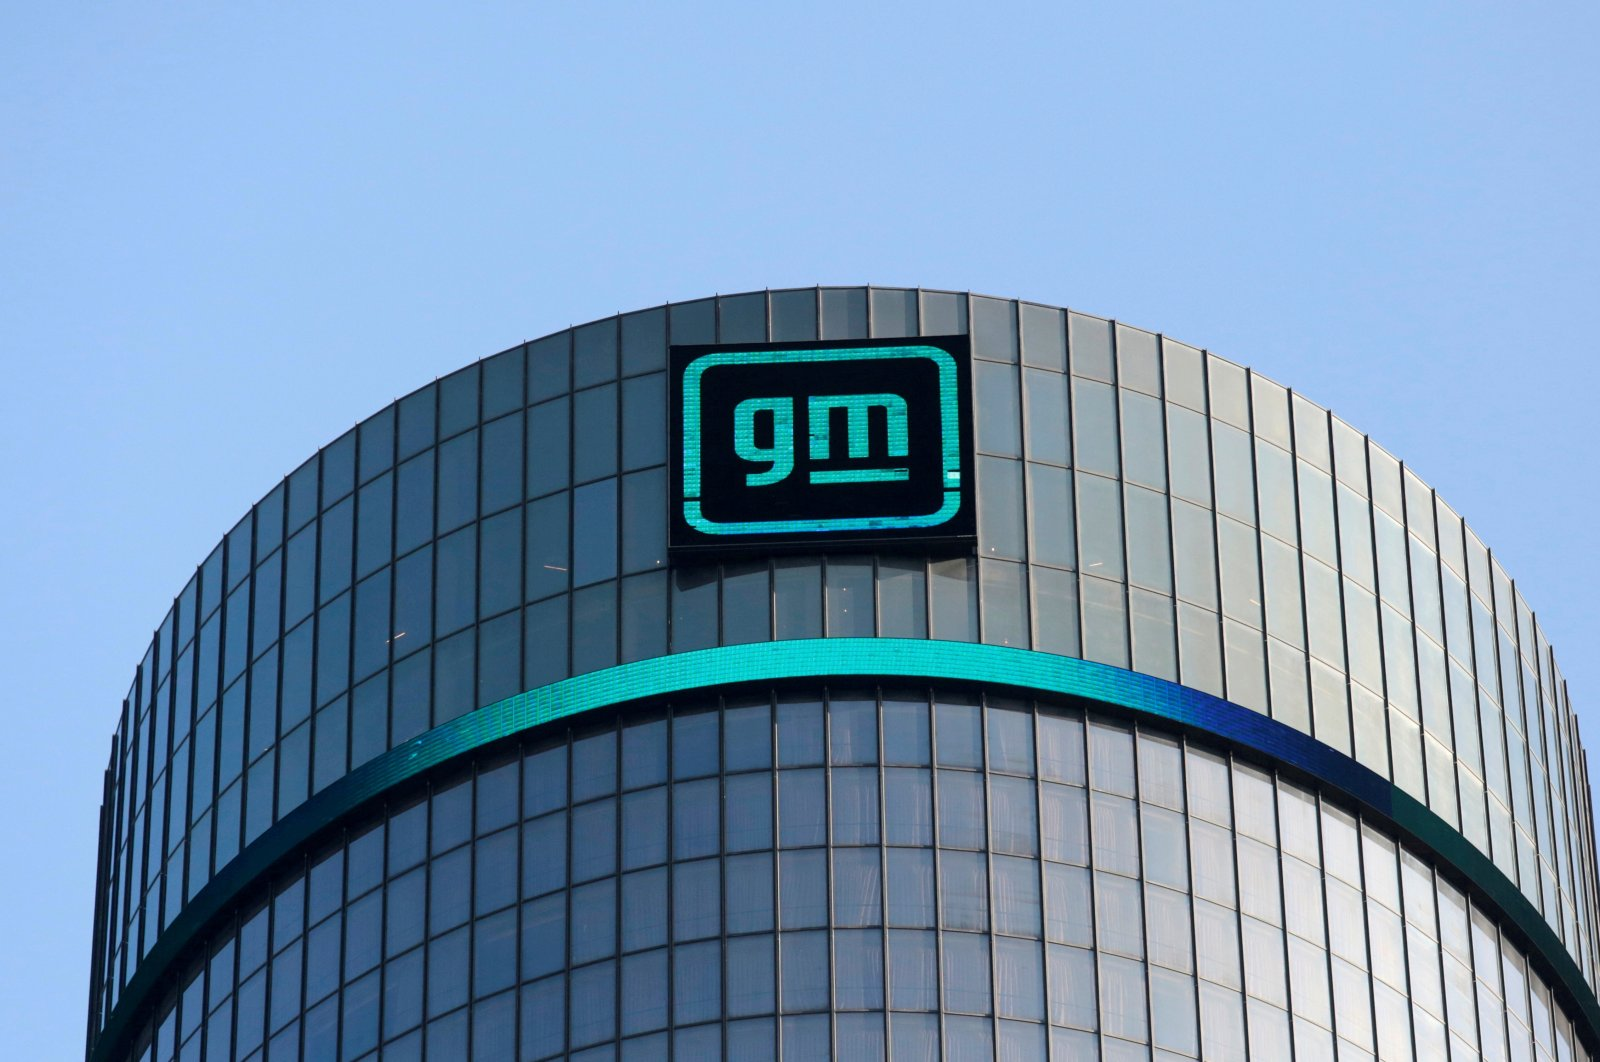 The new GM logo is seen on the facade of the General Motors headquarters in Detroit, Michigan, U.S., March 16, 2021. (Reuters Photo)